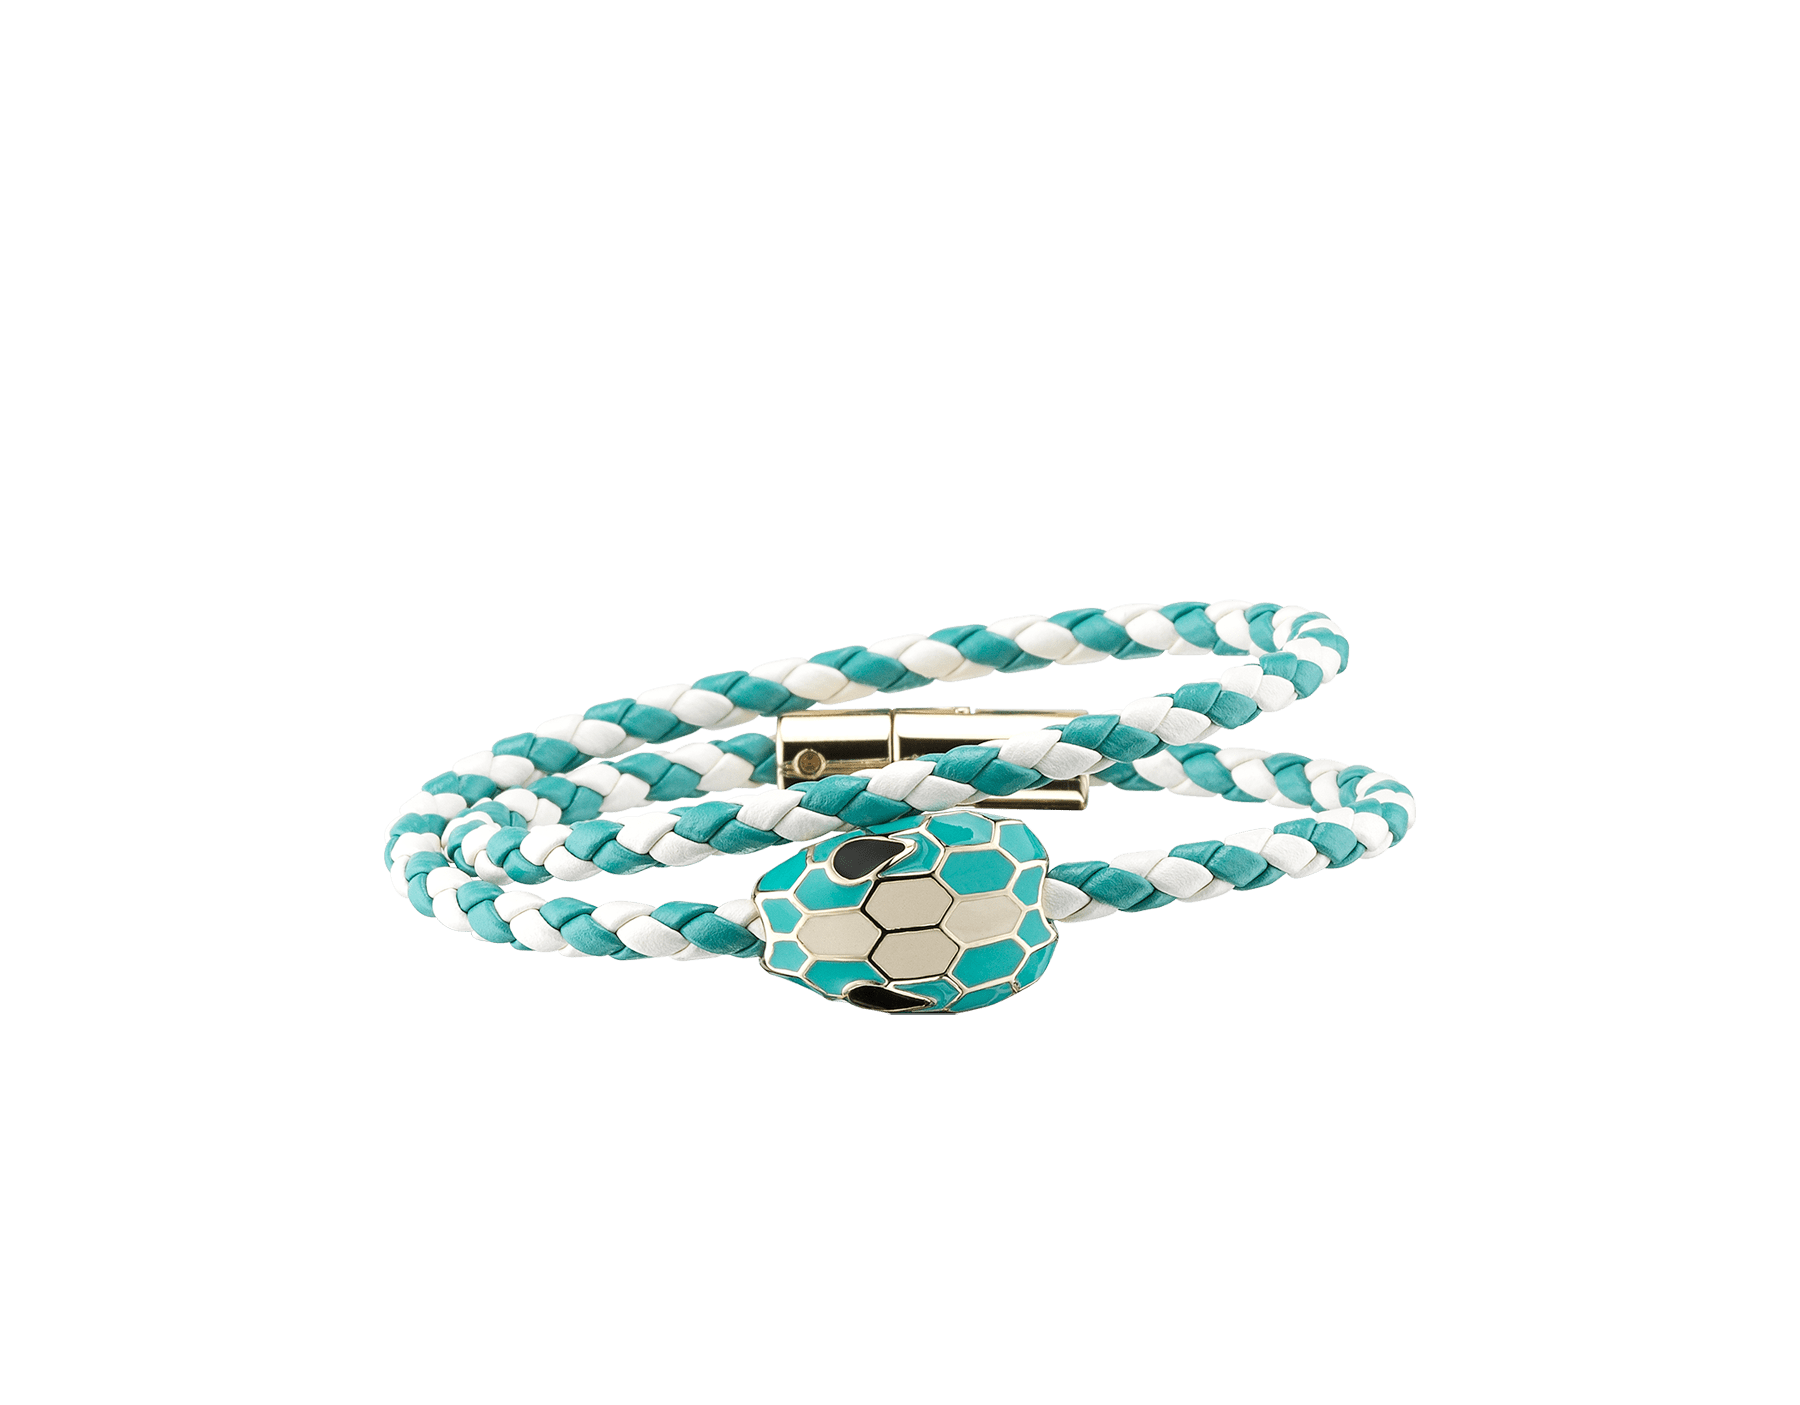 Serpenti Forever multi-coiled braid bracelet inwhite agate and arctic jade woven calf leather, with the iconic snakehead décor in arctic jade and white agate enamel. 289169 image 1